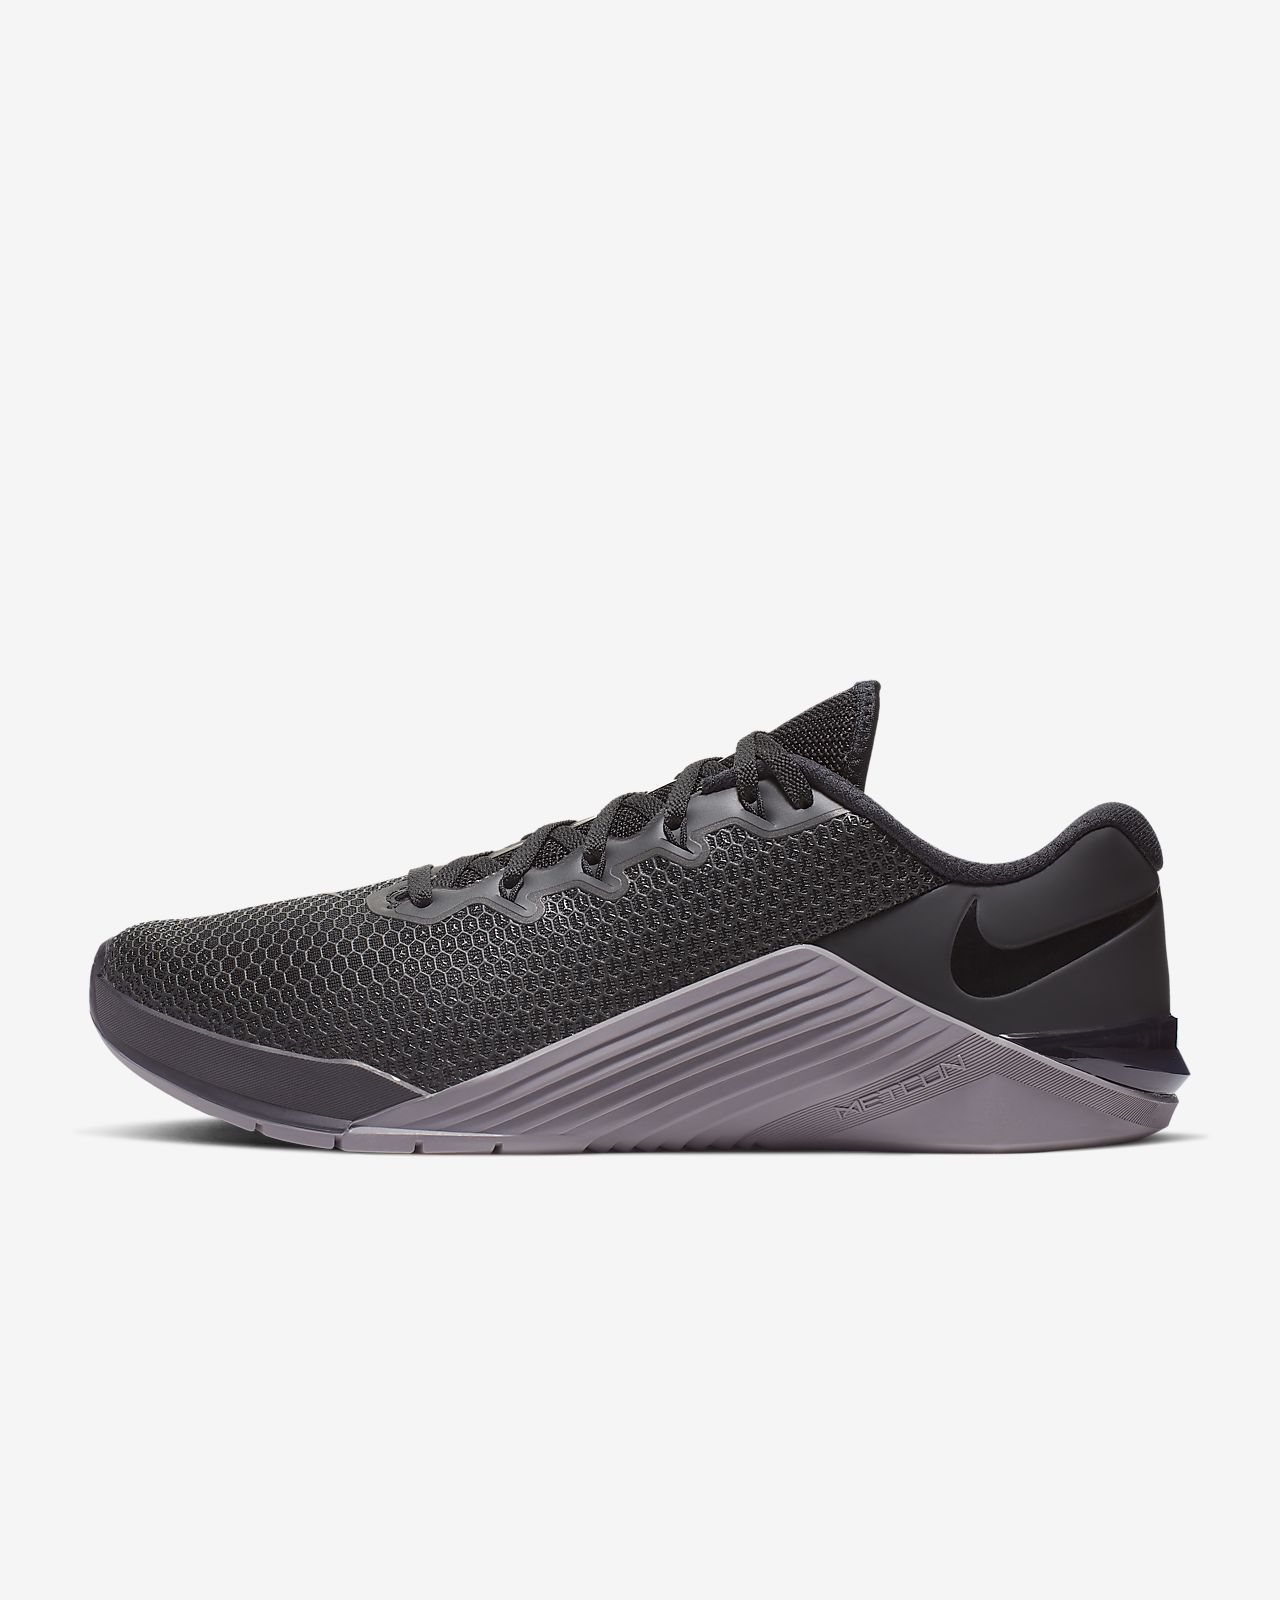 Nike Metcon 5 Men's Training Shoe